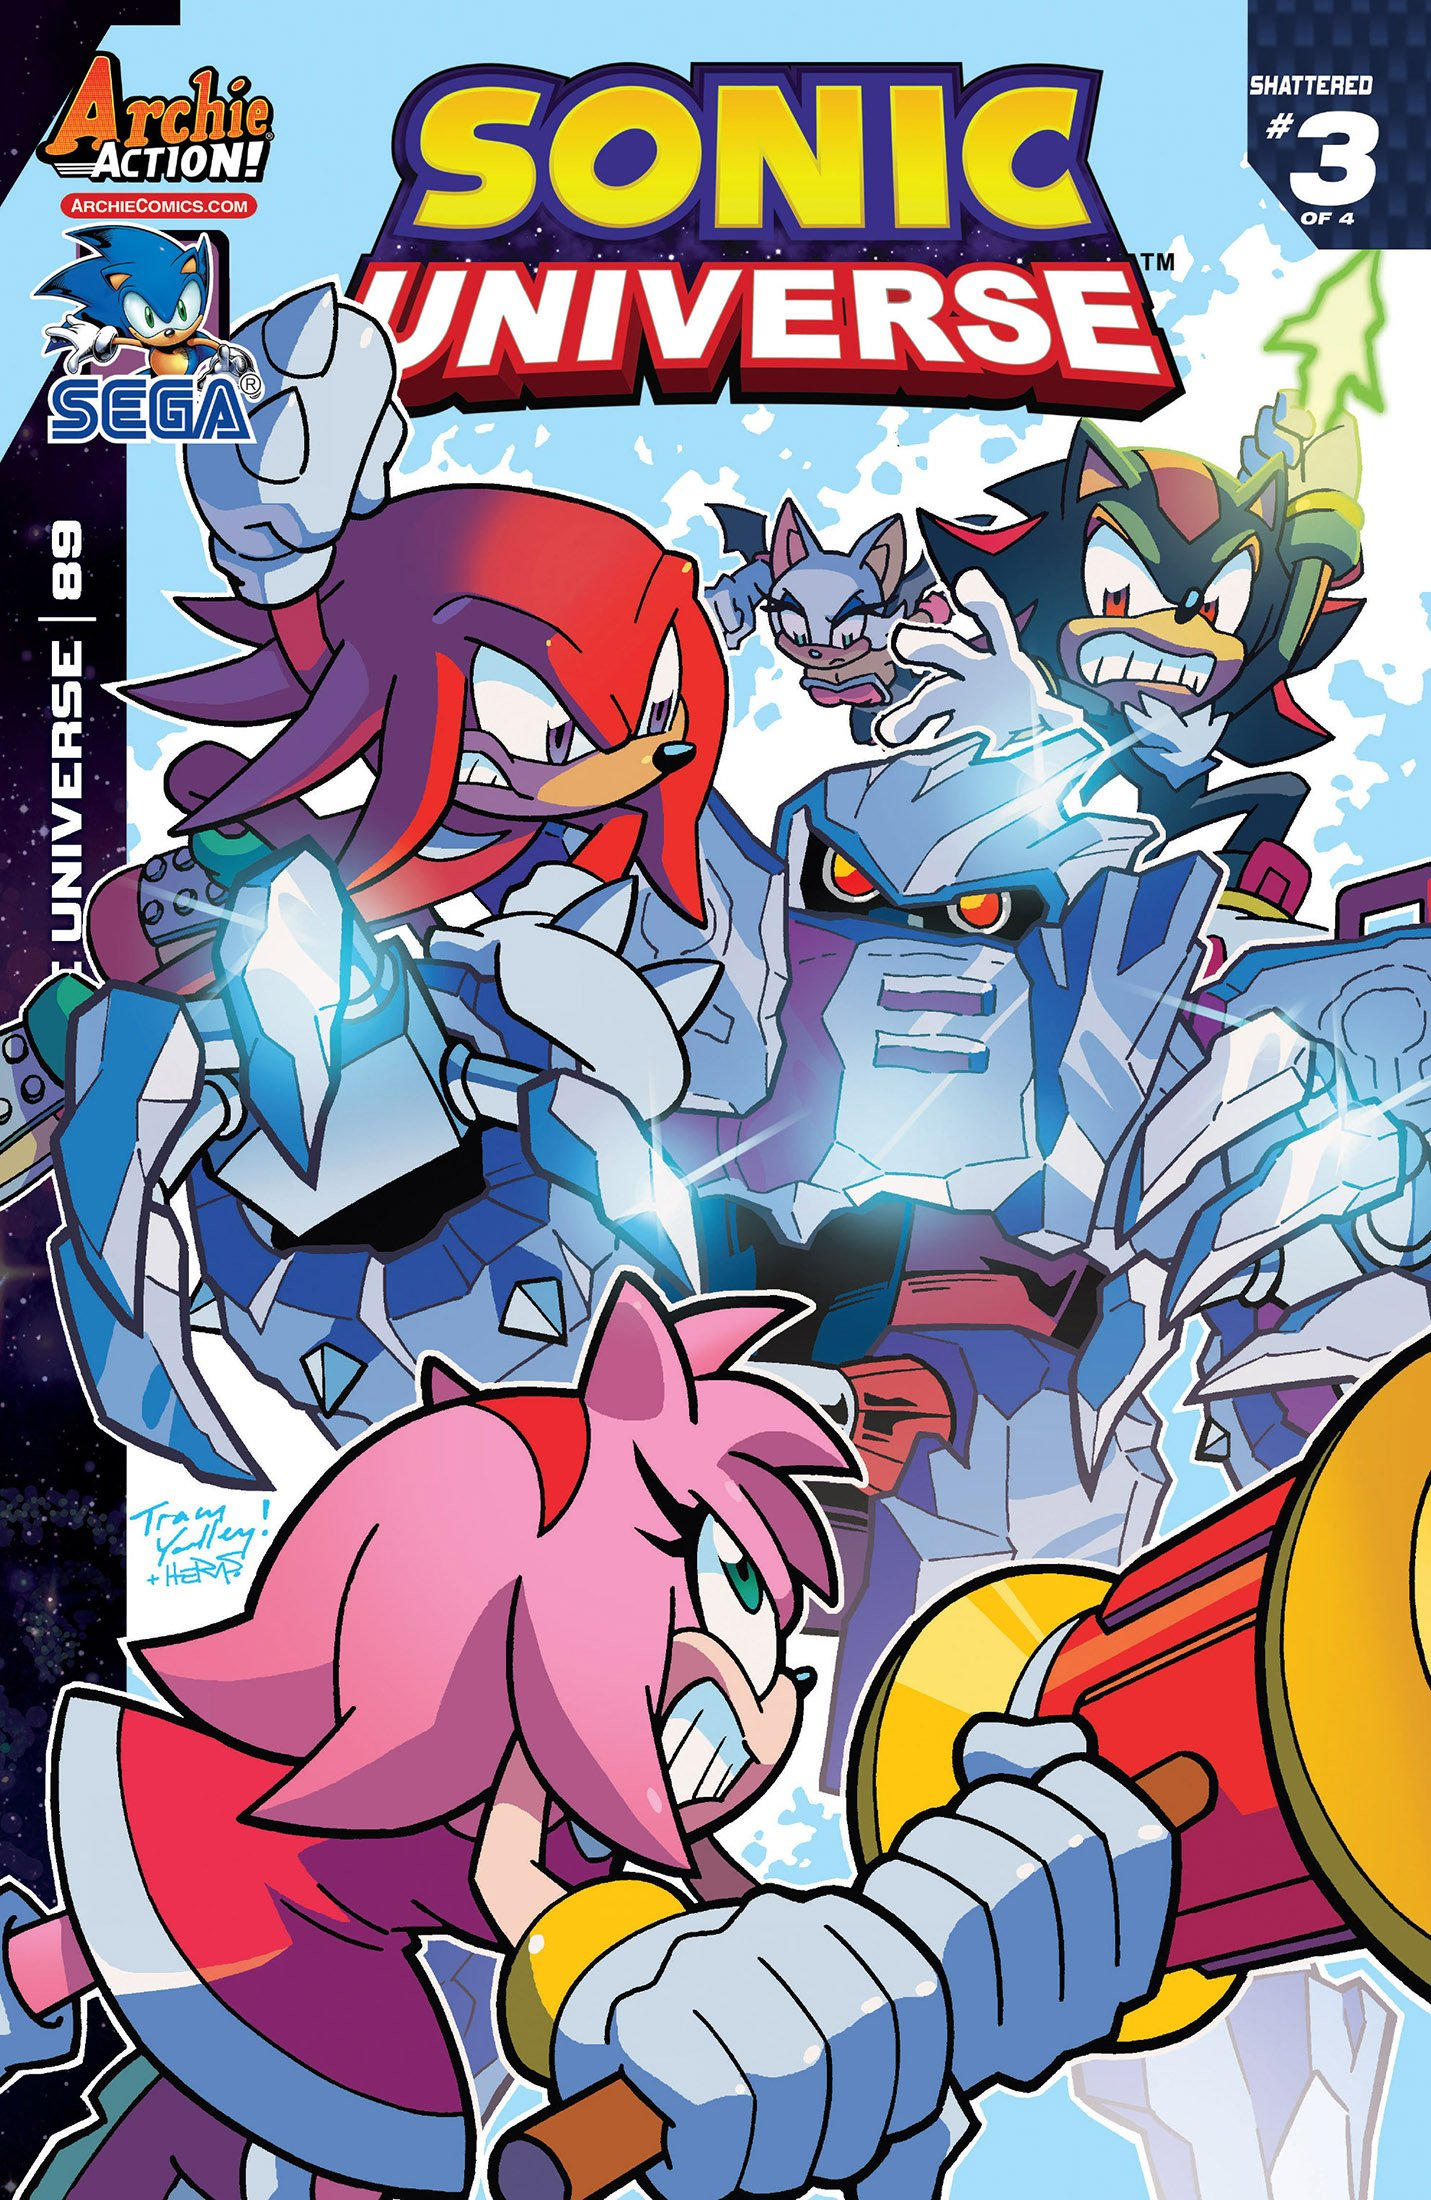 Sonic Universe 089 (October 2016)